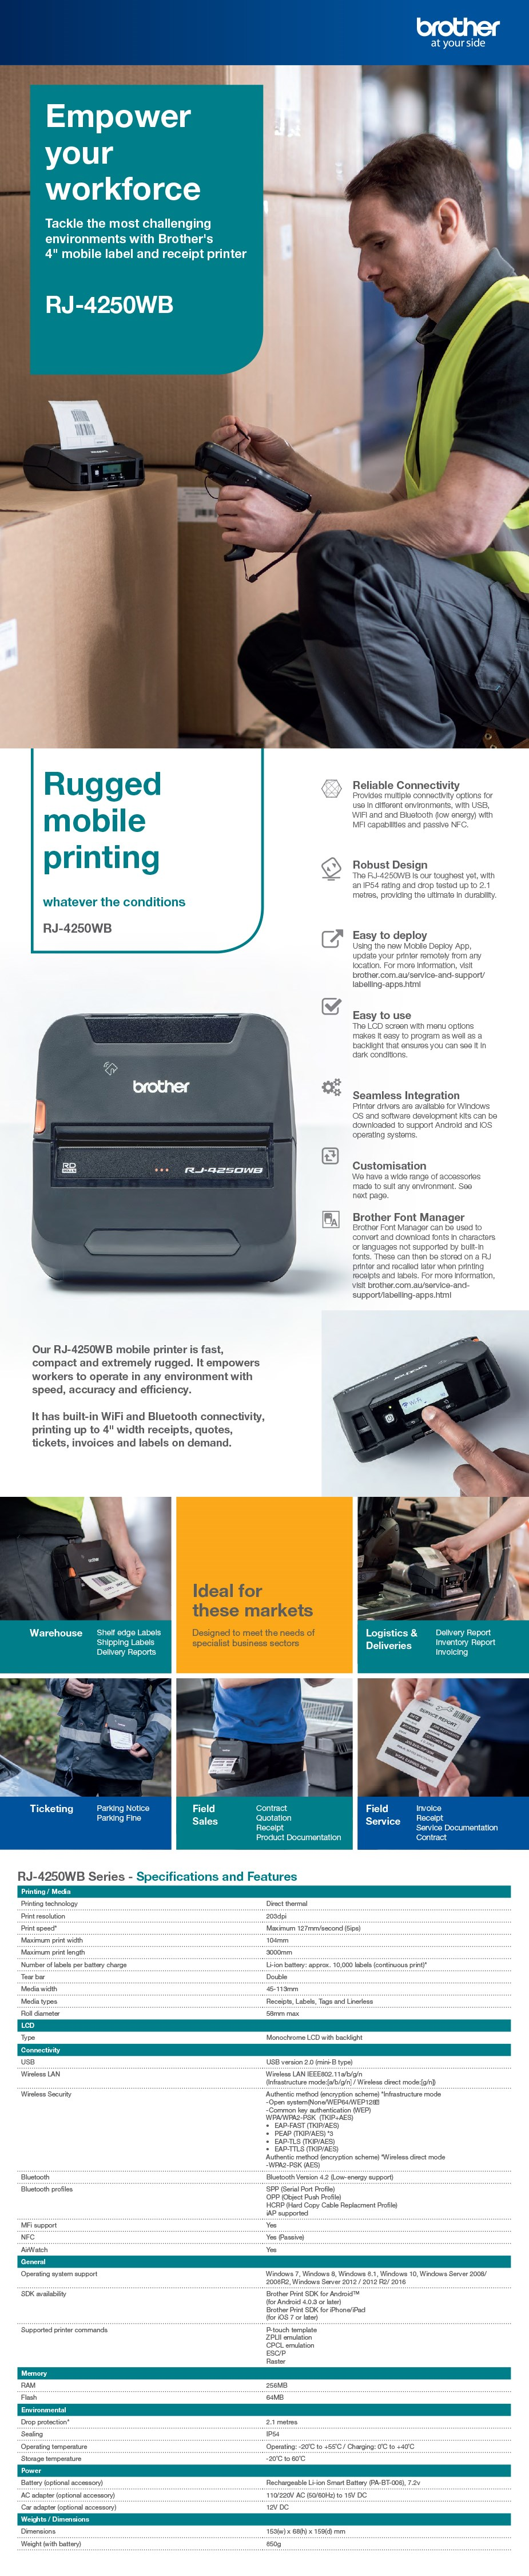 Brother RJ-4250B-Bundle-Pack 102mm Mobile Wireless Receipt/Label Printer - Overview 1